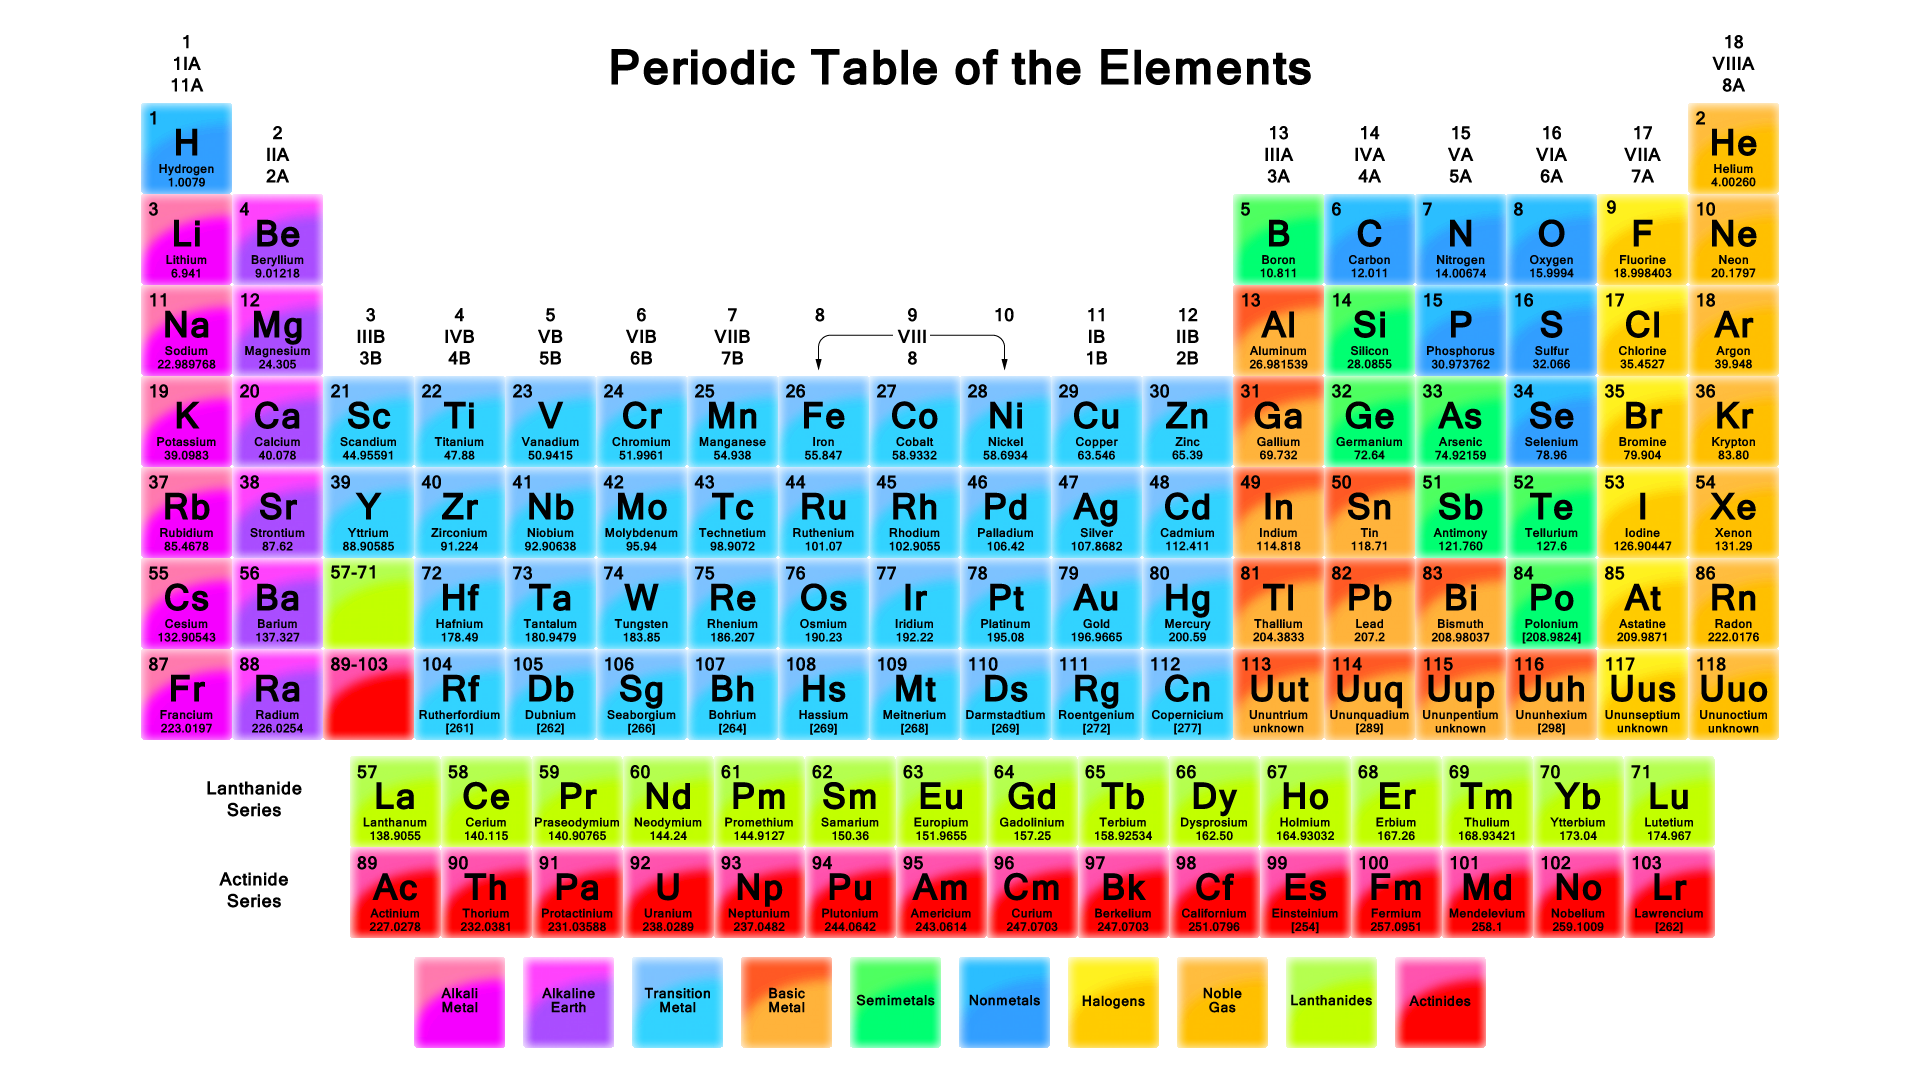 Periodic table images new calendar template site for 10 elements of the periodic table